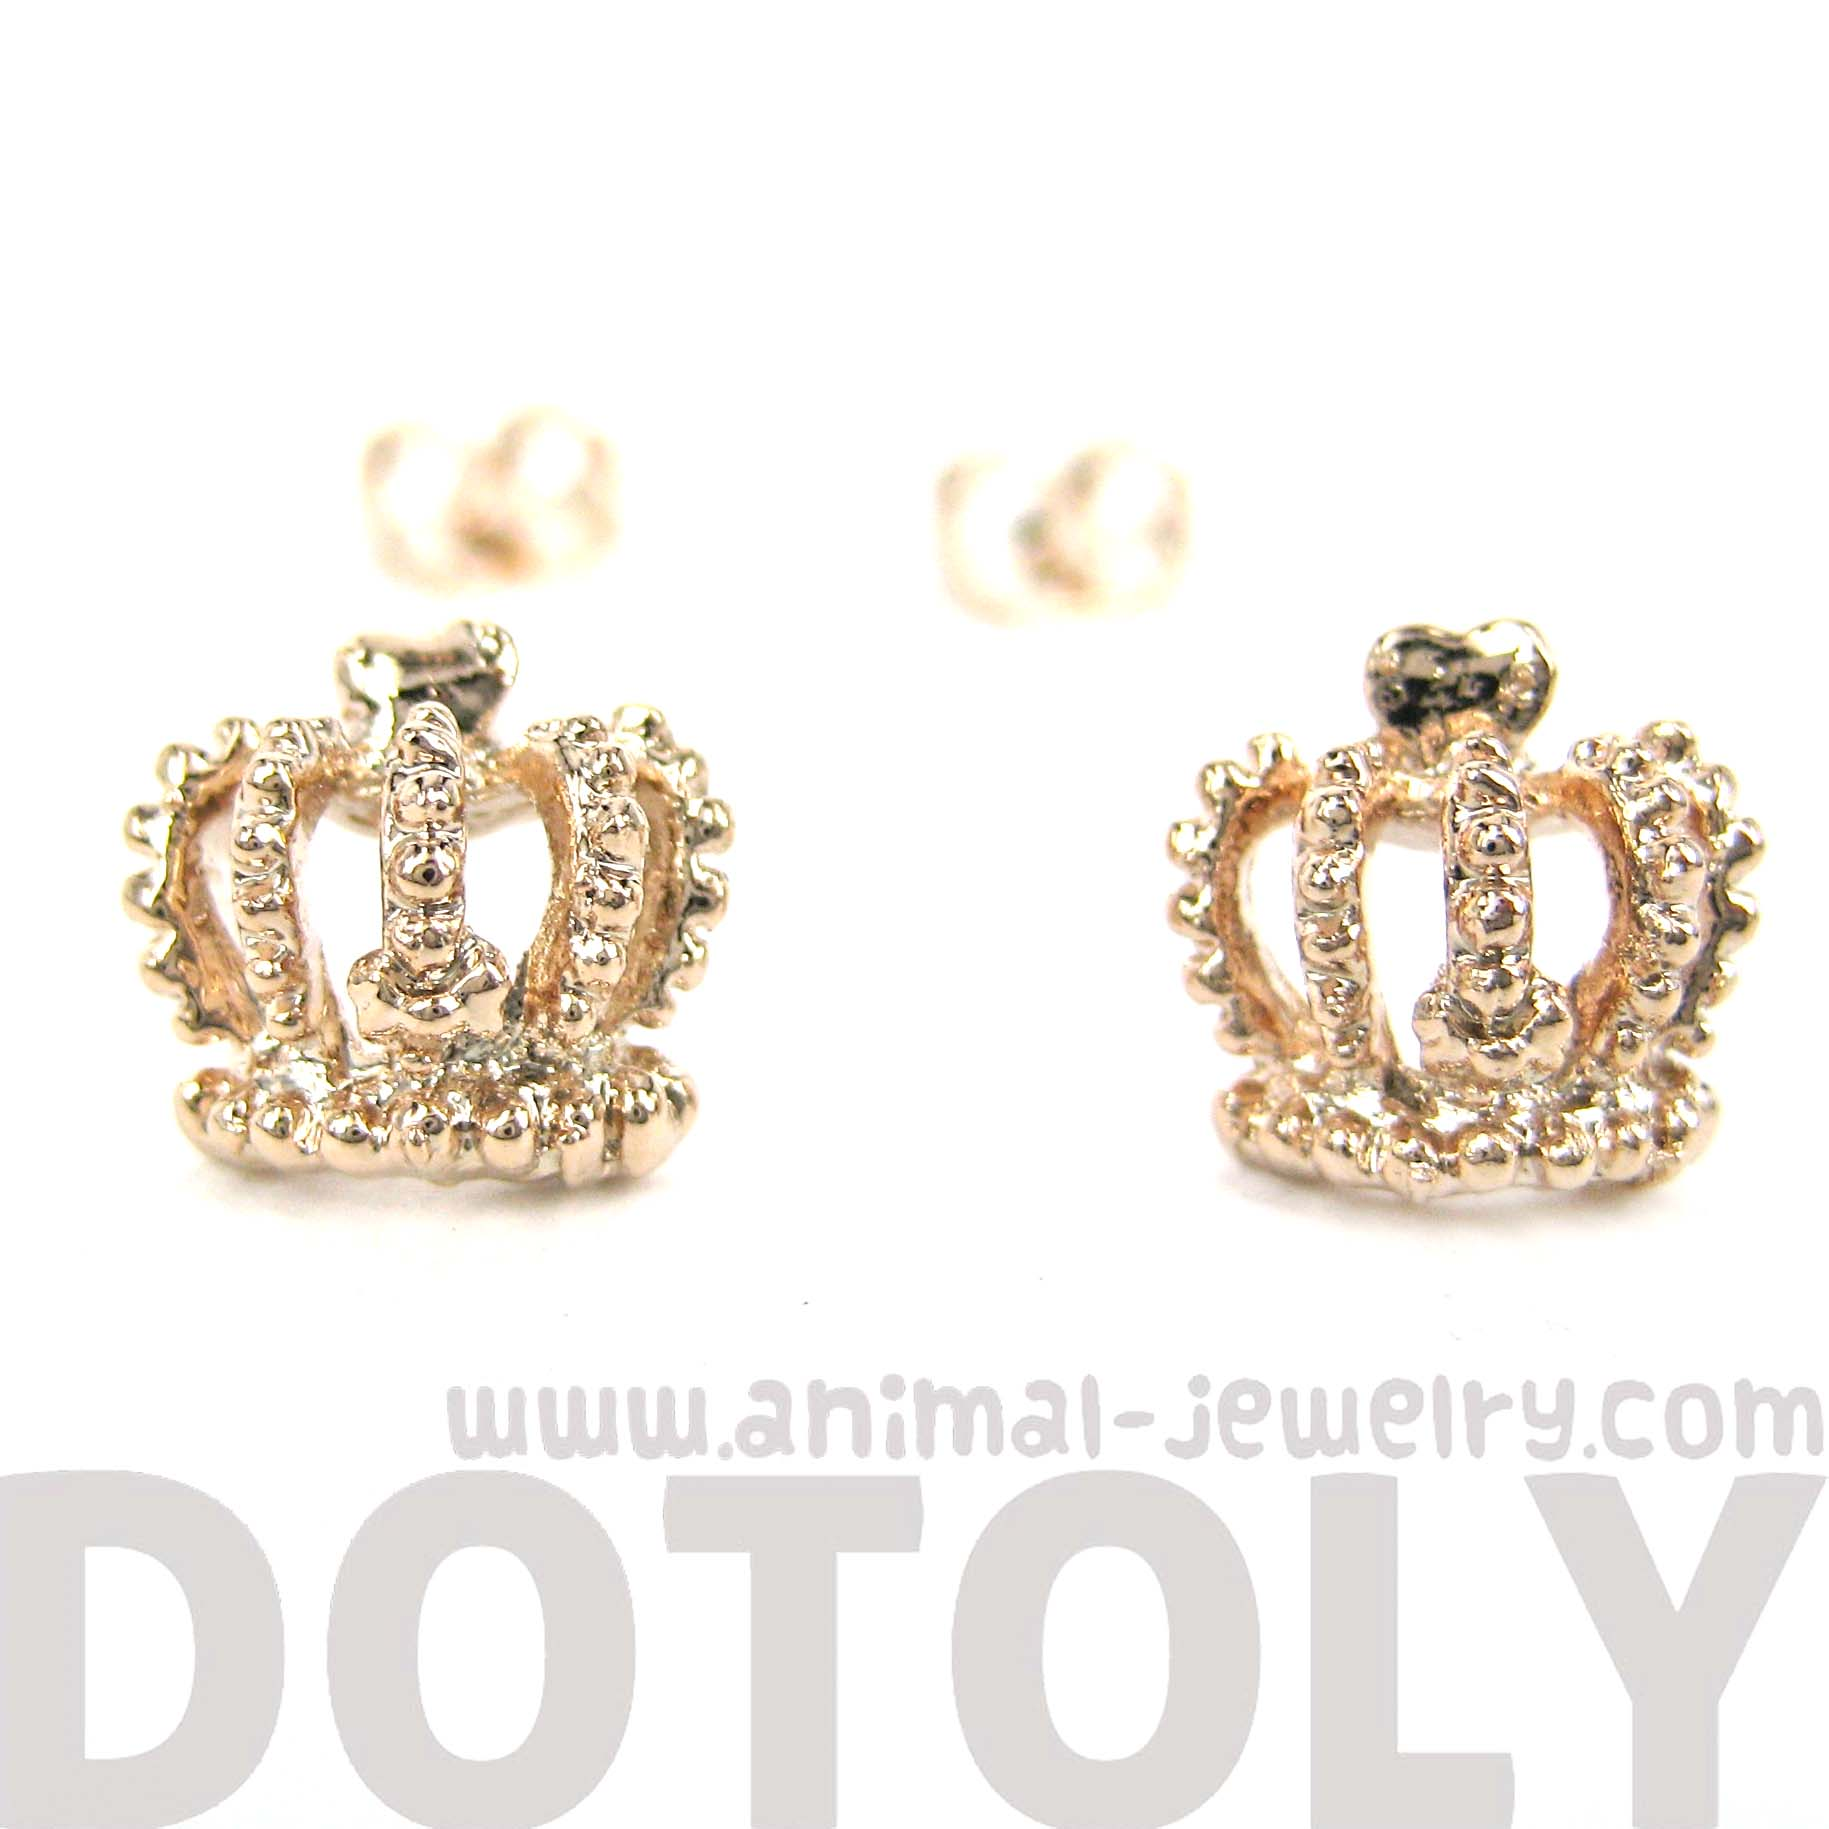 gold color stud jewelry earrings heart rose from crystal earring alloy top steel pin women crown girls with quality in item austrian paved